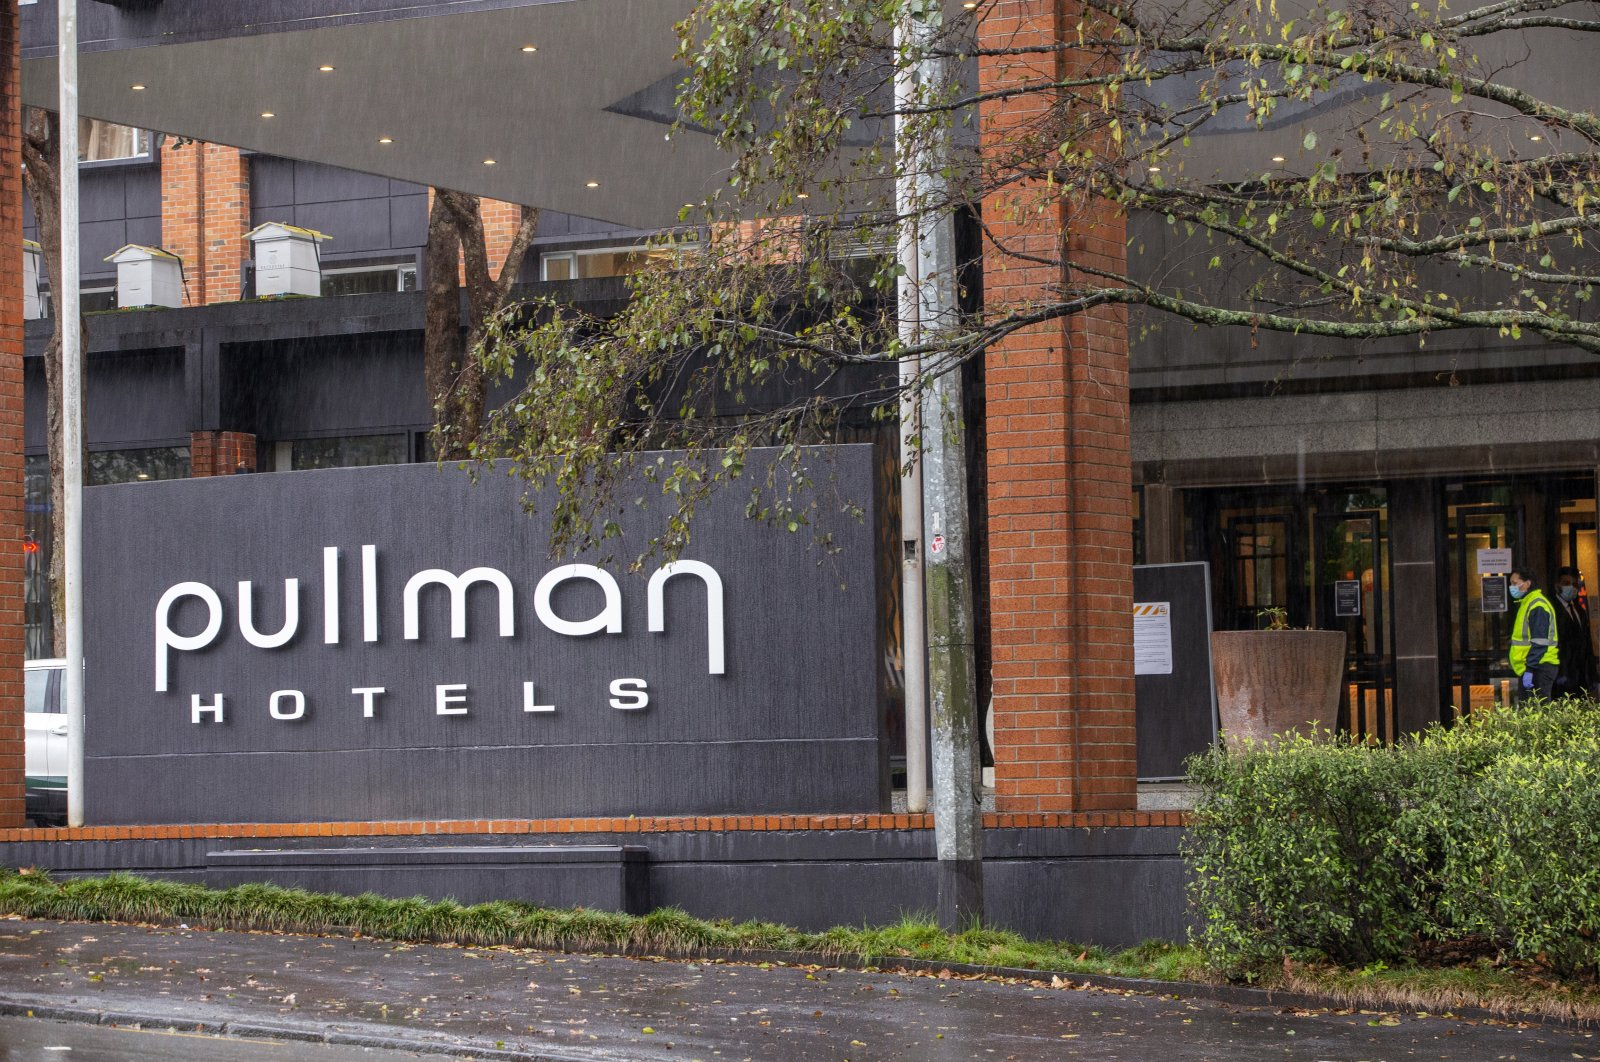 Security patrol outside the Pullman Hotel in Auckland, New Zealand, July 6, 2020. (AP Photo)